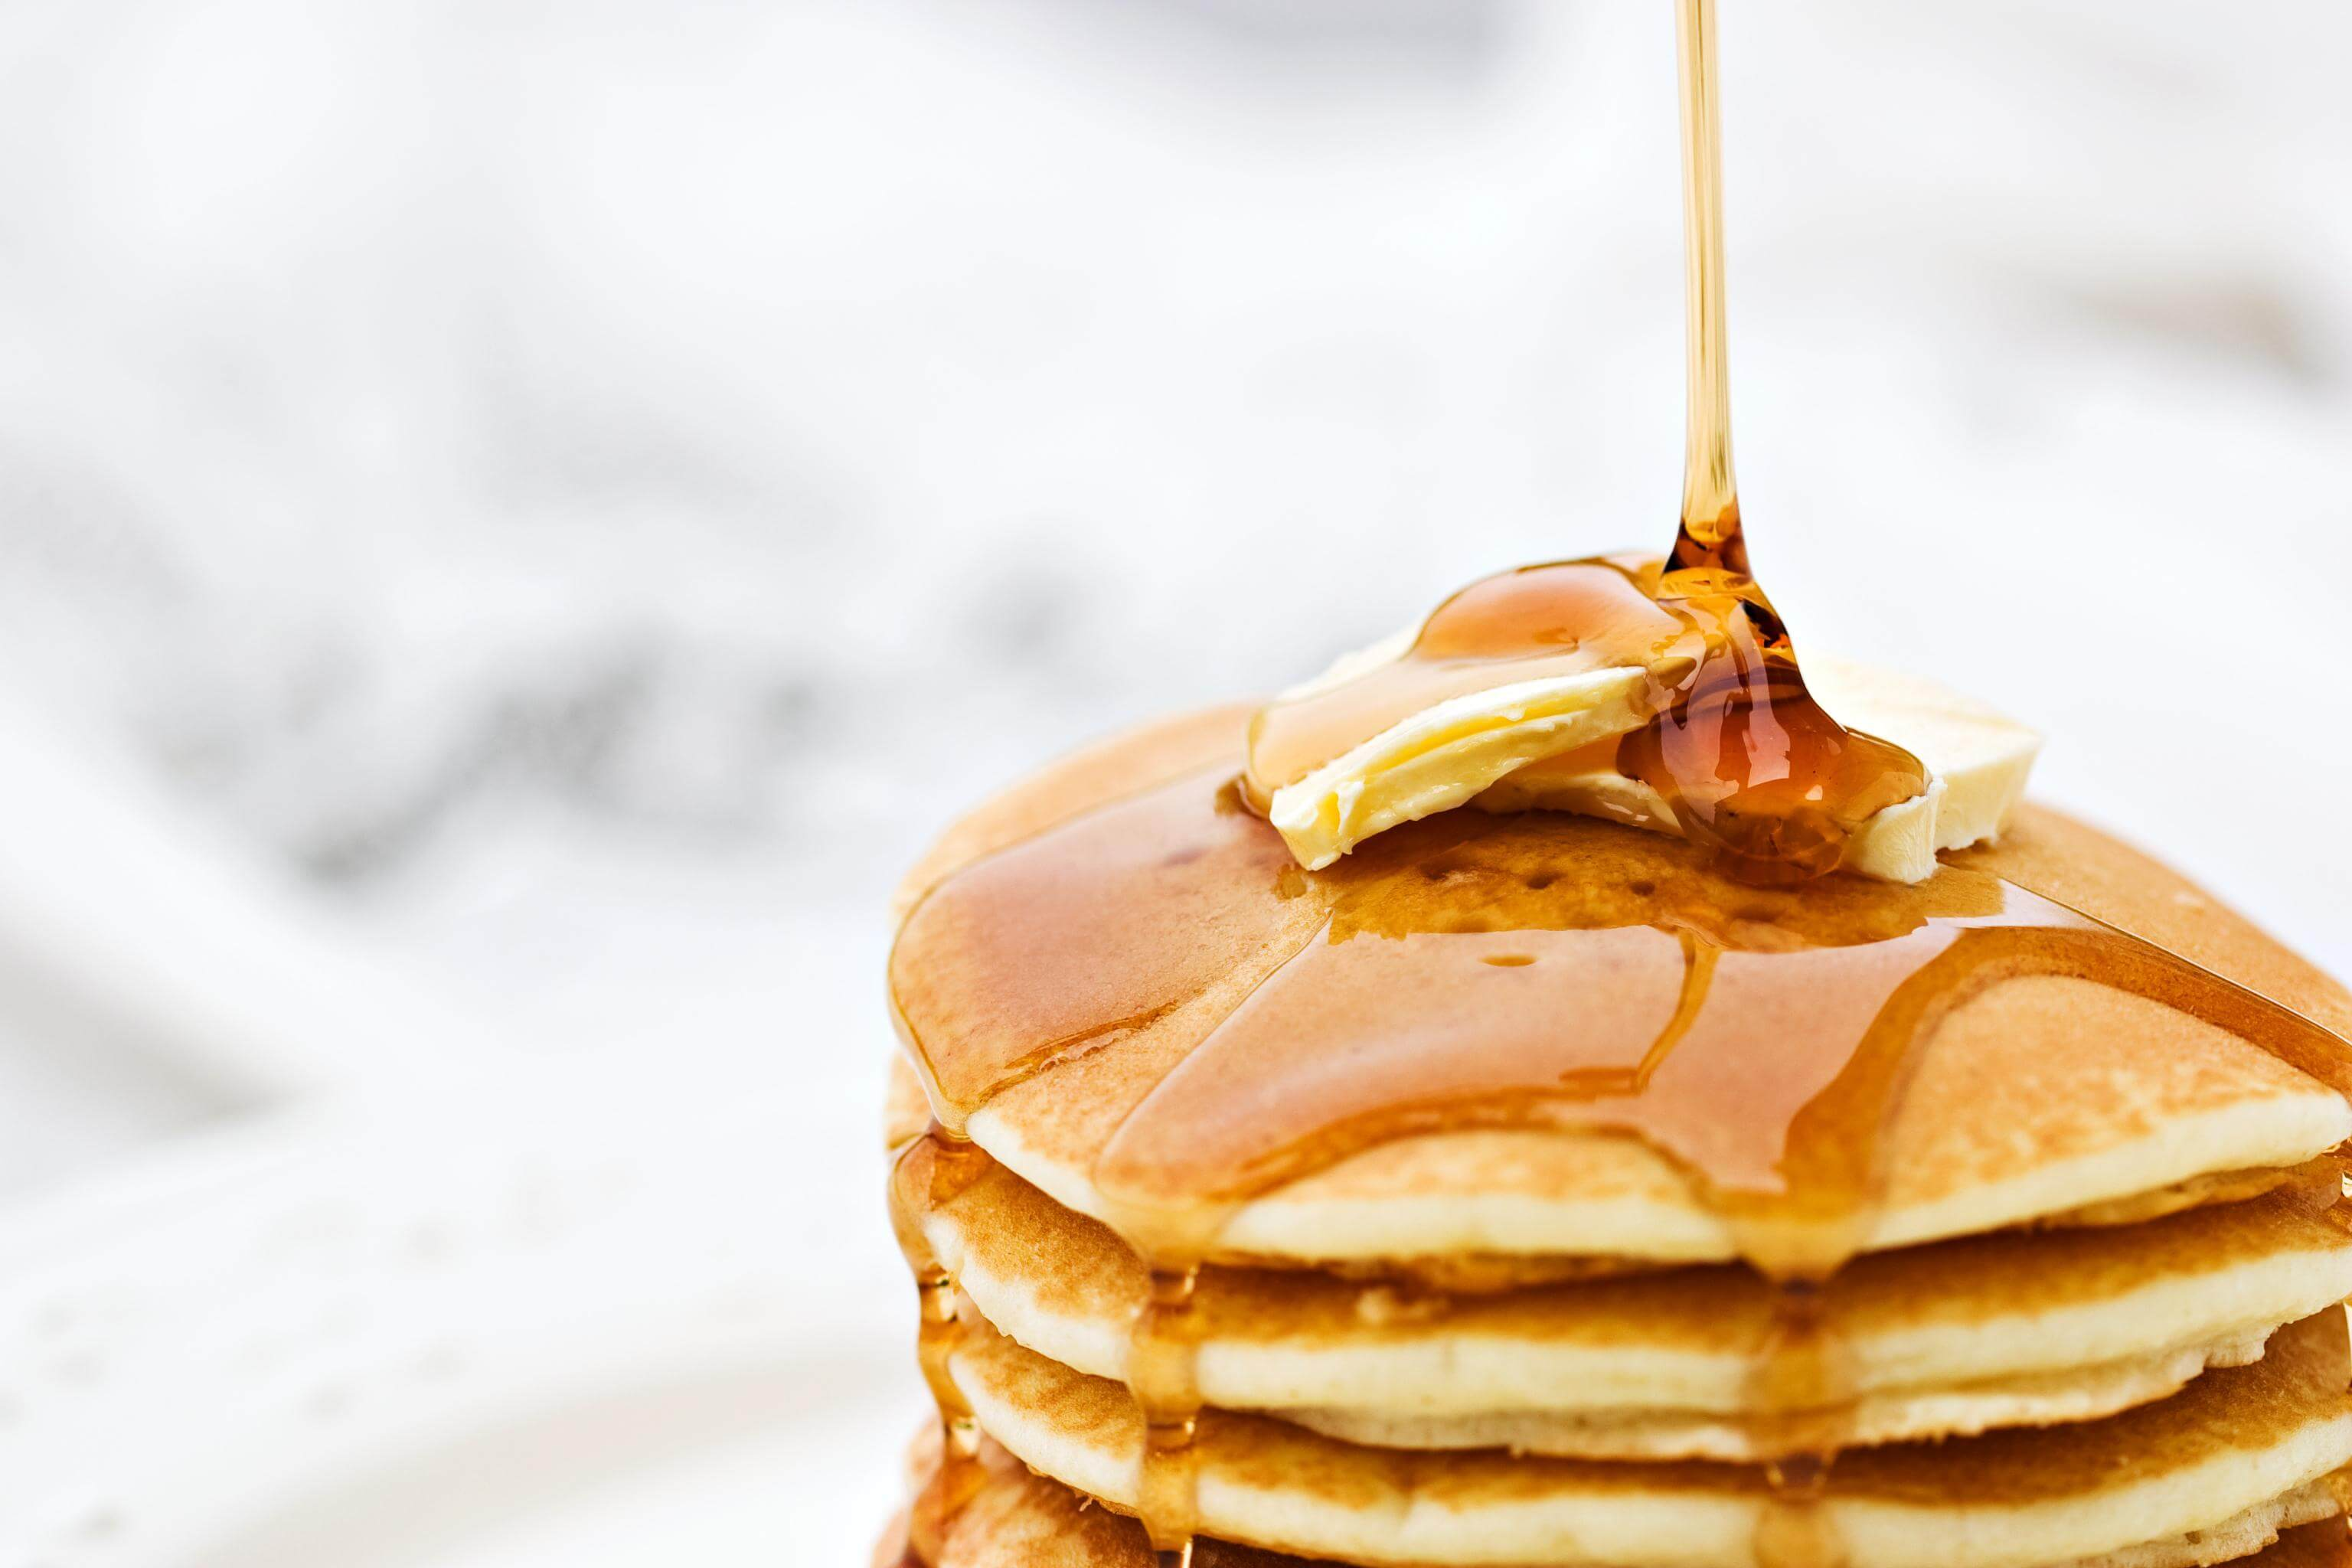 pancakes_carnival_oil_honey_food_stuff_hd-wallpaper-359839